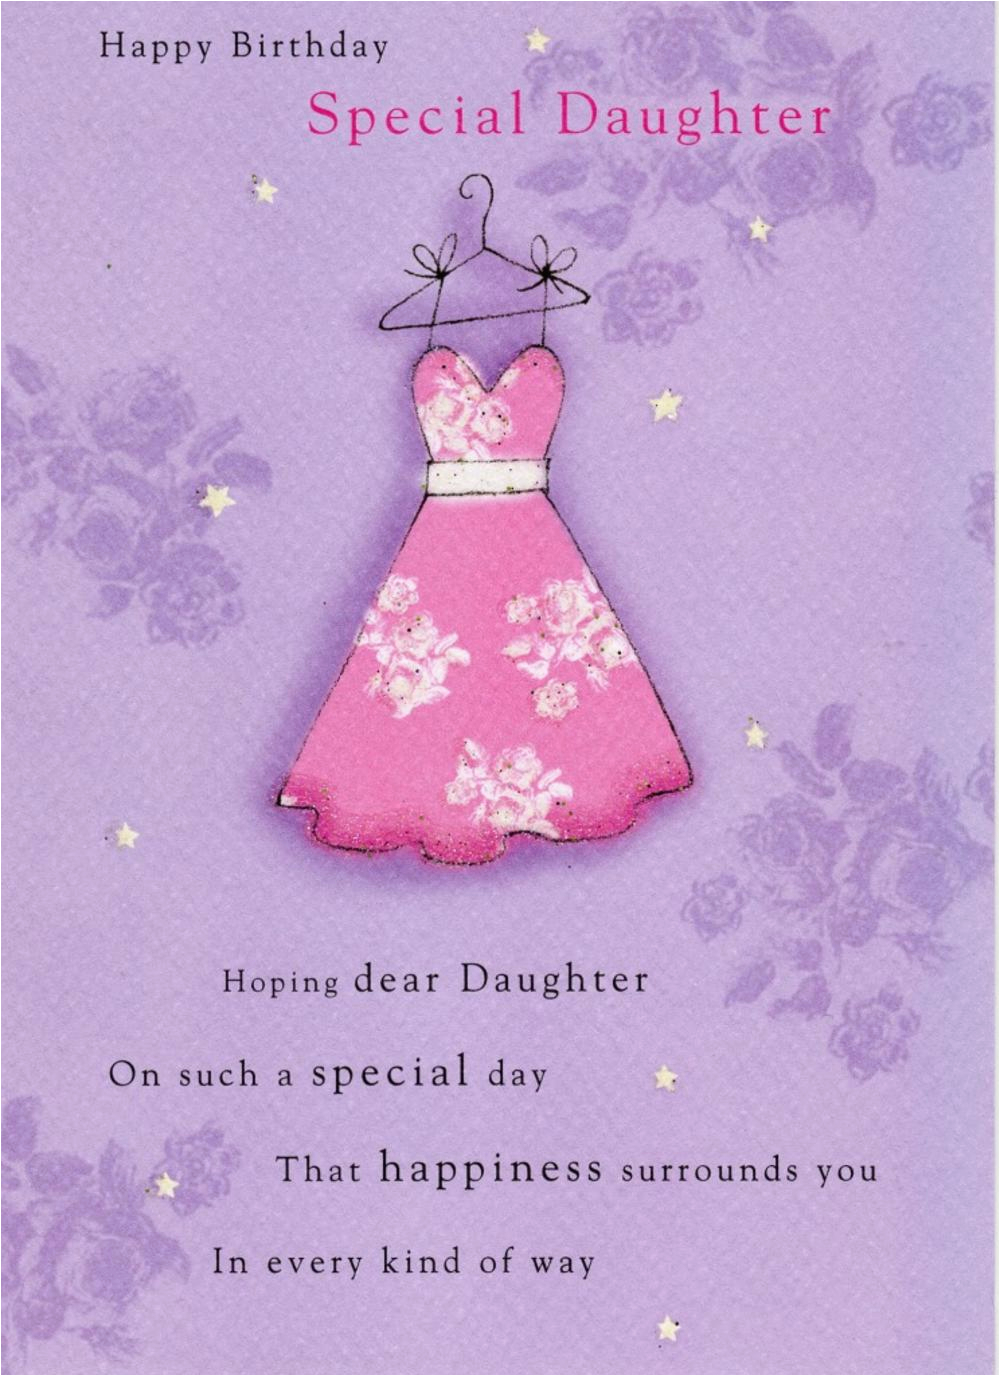 kcsnjwr027 special daughter birthday greeting card second nature cards flittered glitter